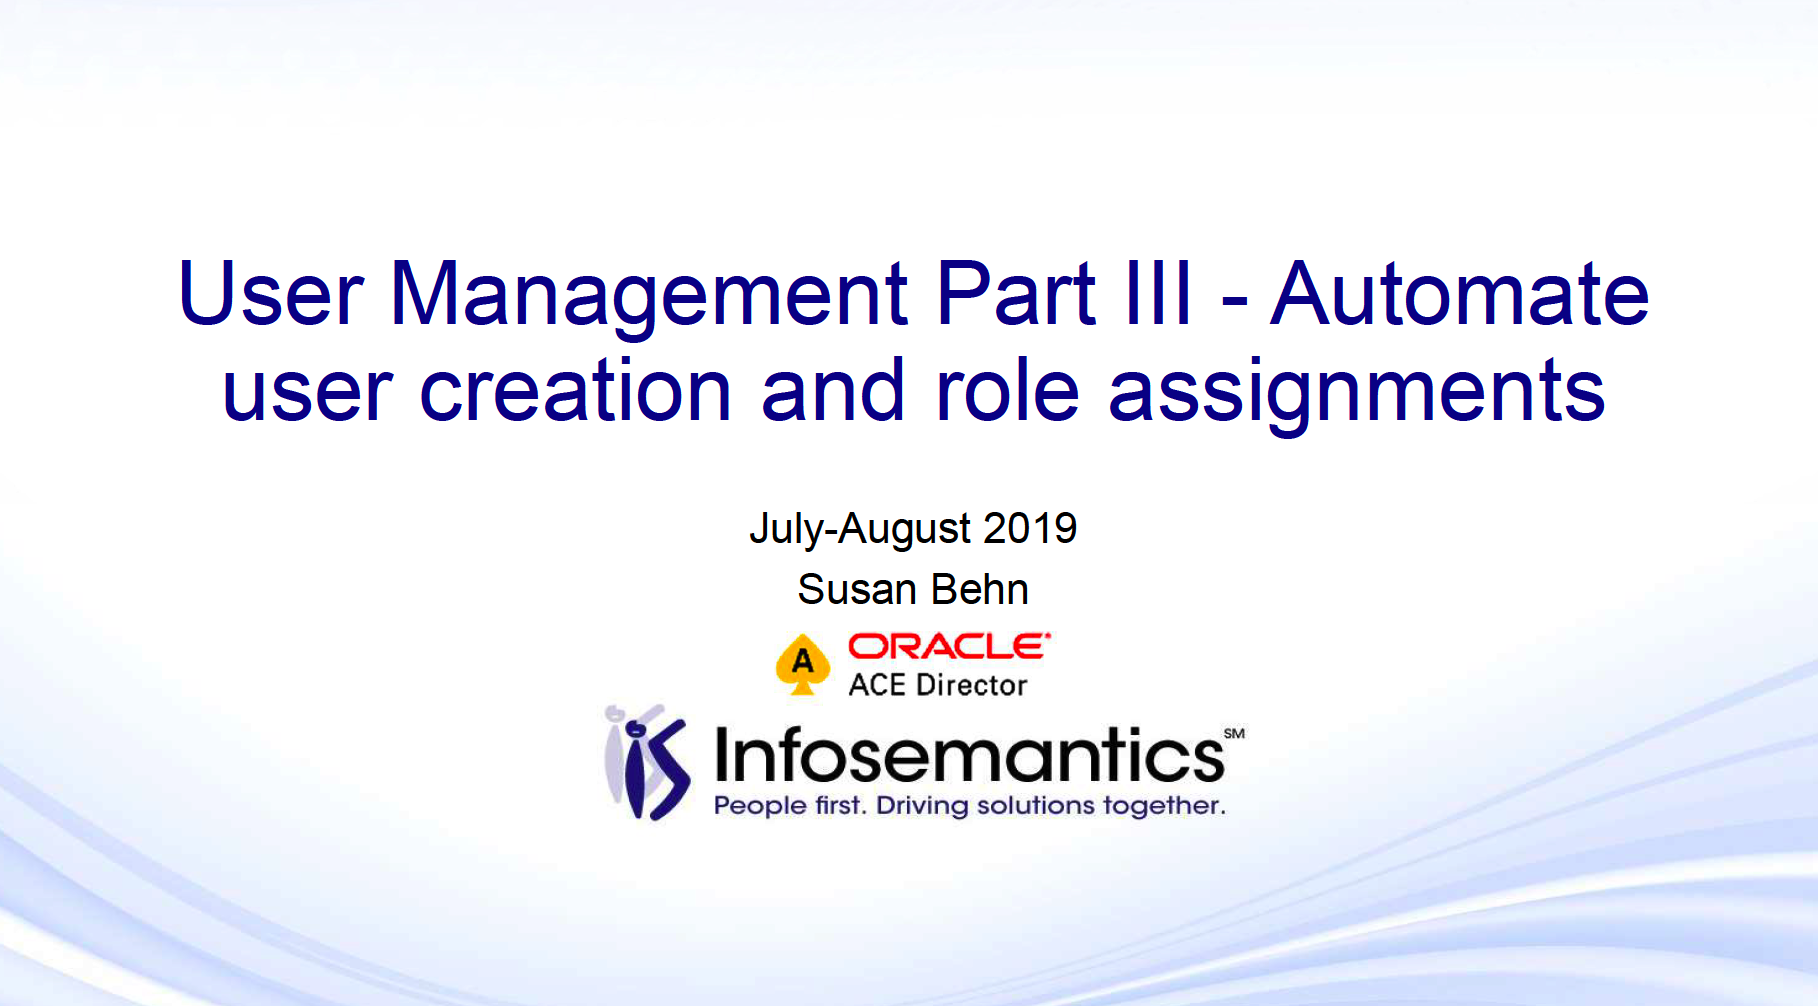 User Management Part III - Automate user creation and role